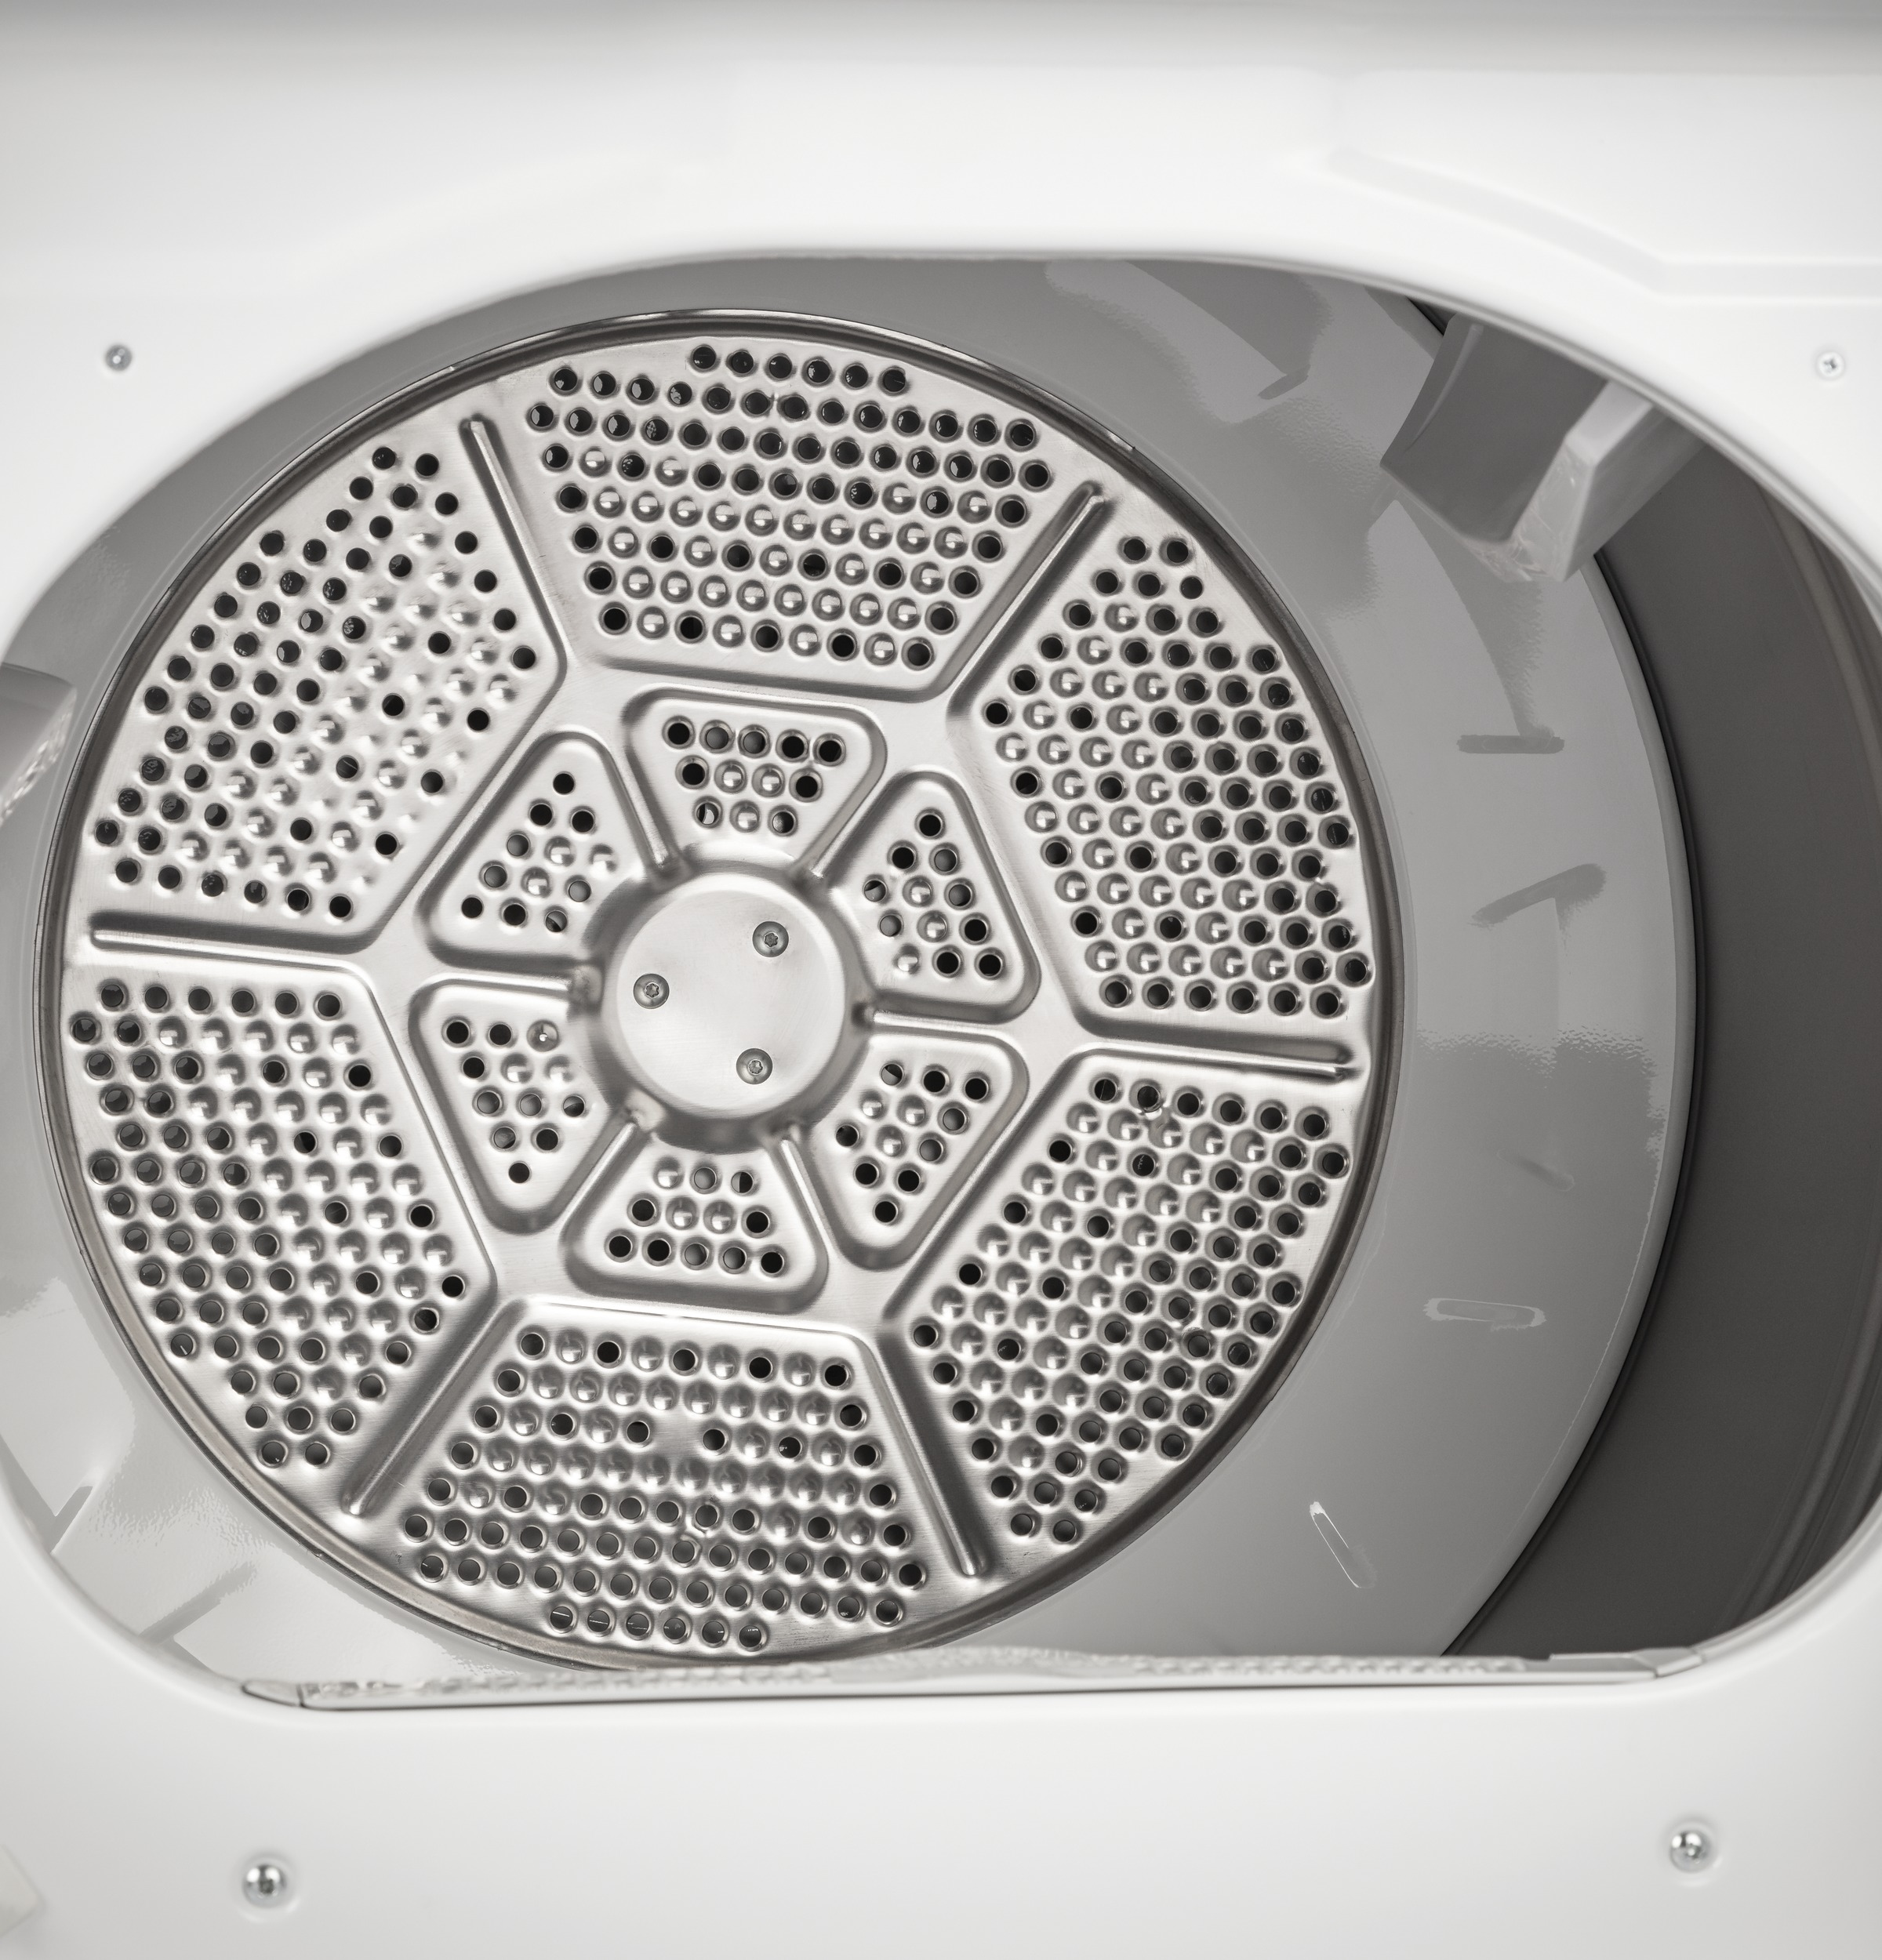 Model: GTD72EBPNDG | GE GE® 7.4 cu. ft. Capacity aluminized alloy drum Electric Dryer with Sanitize Cycle and Sensor Dry